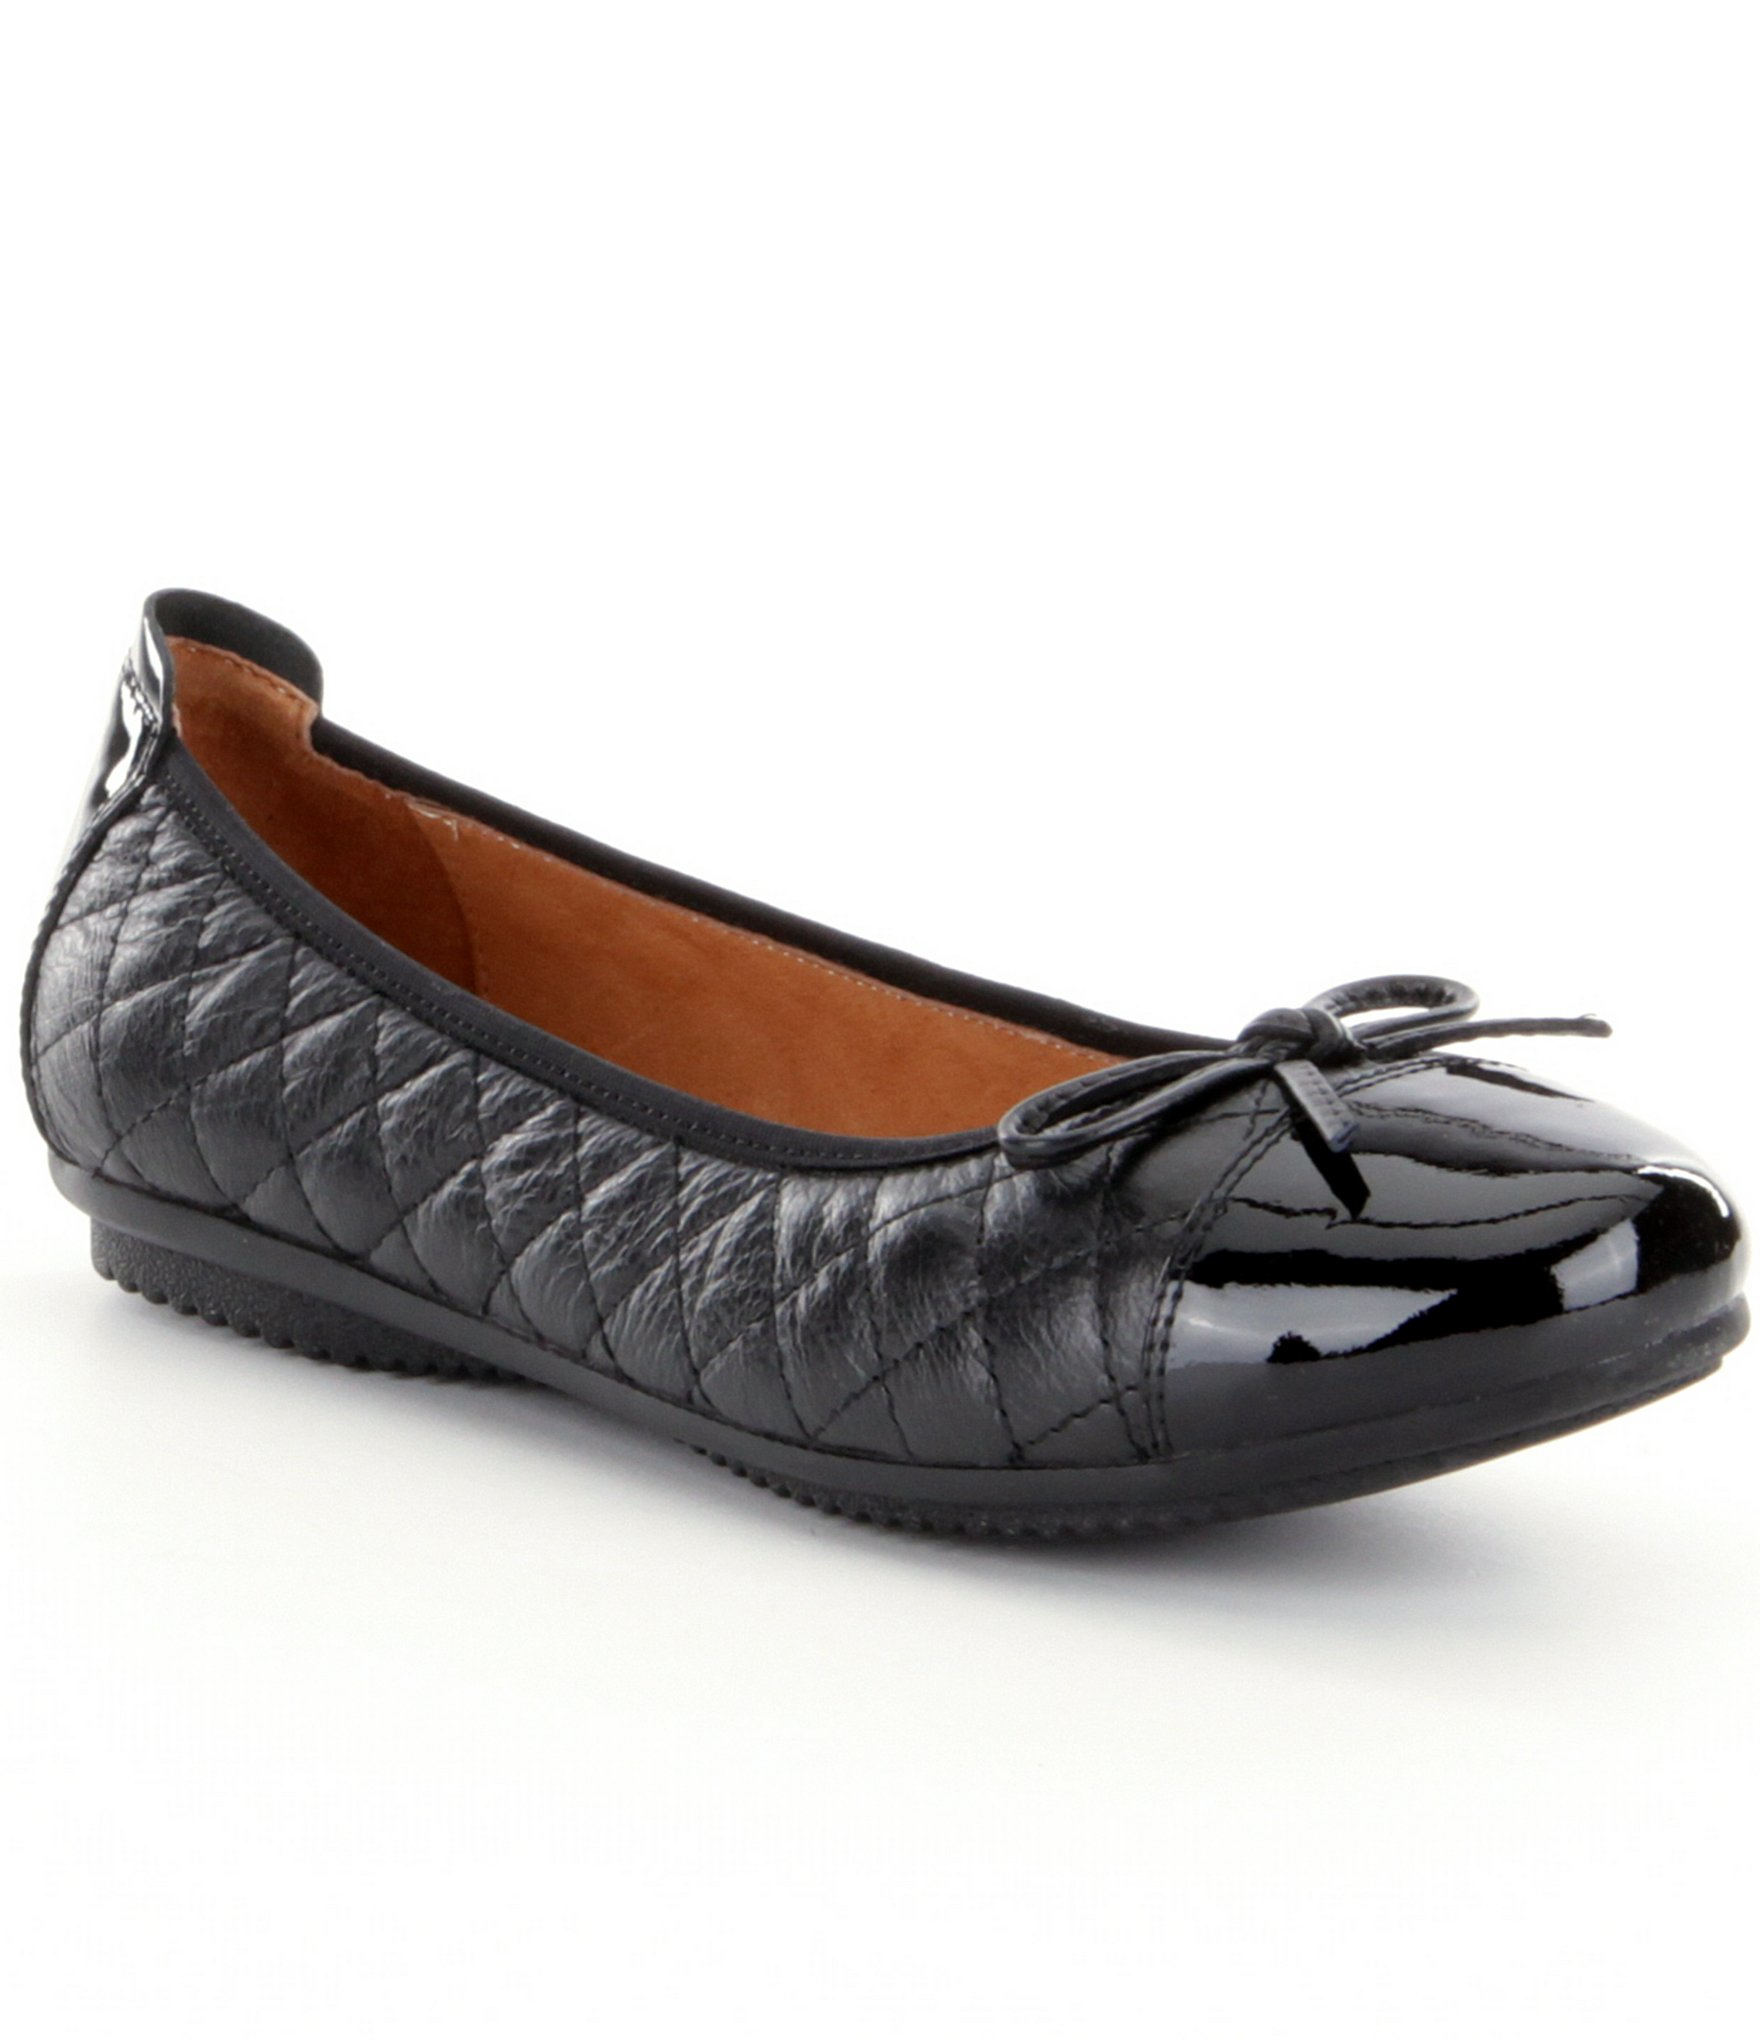 josef seibel pippa 25 quilted leather bow detail ballet flats in black lyst. Black Bedroom Furniture Sets. Home Design Ideas